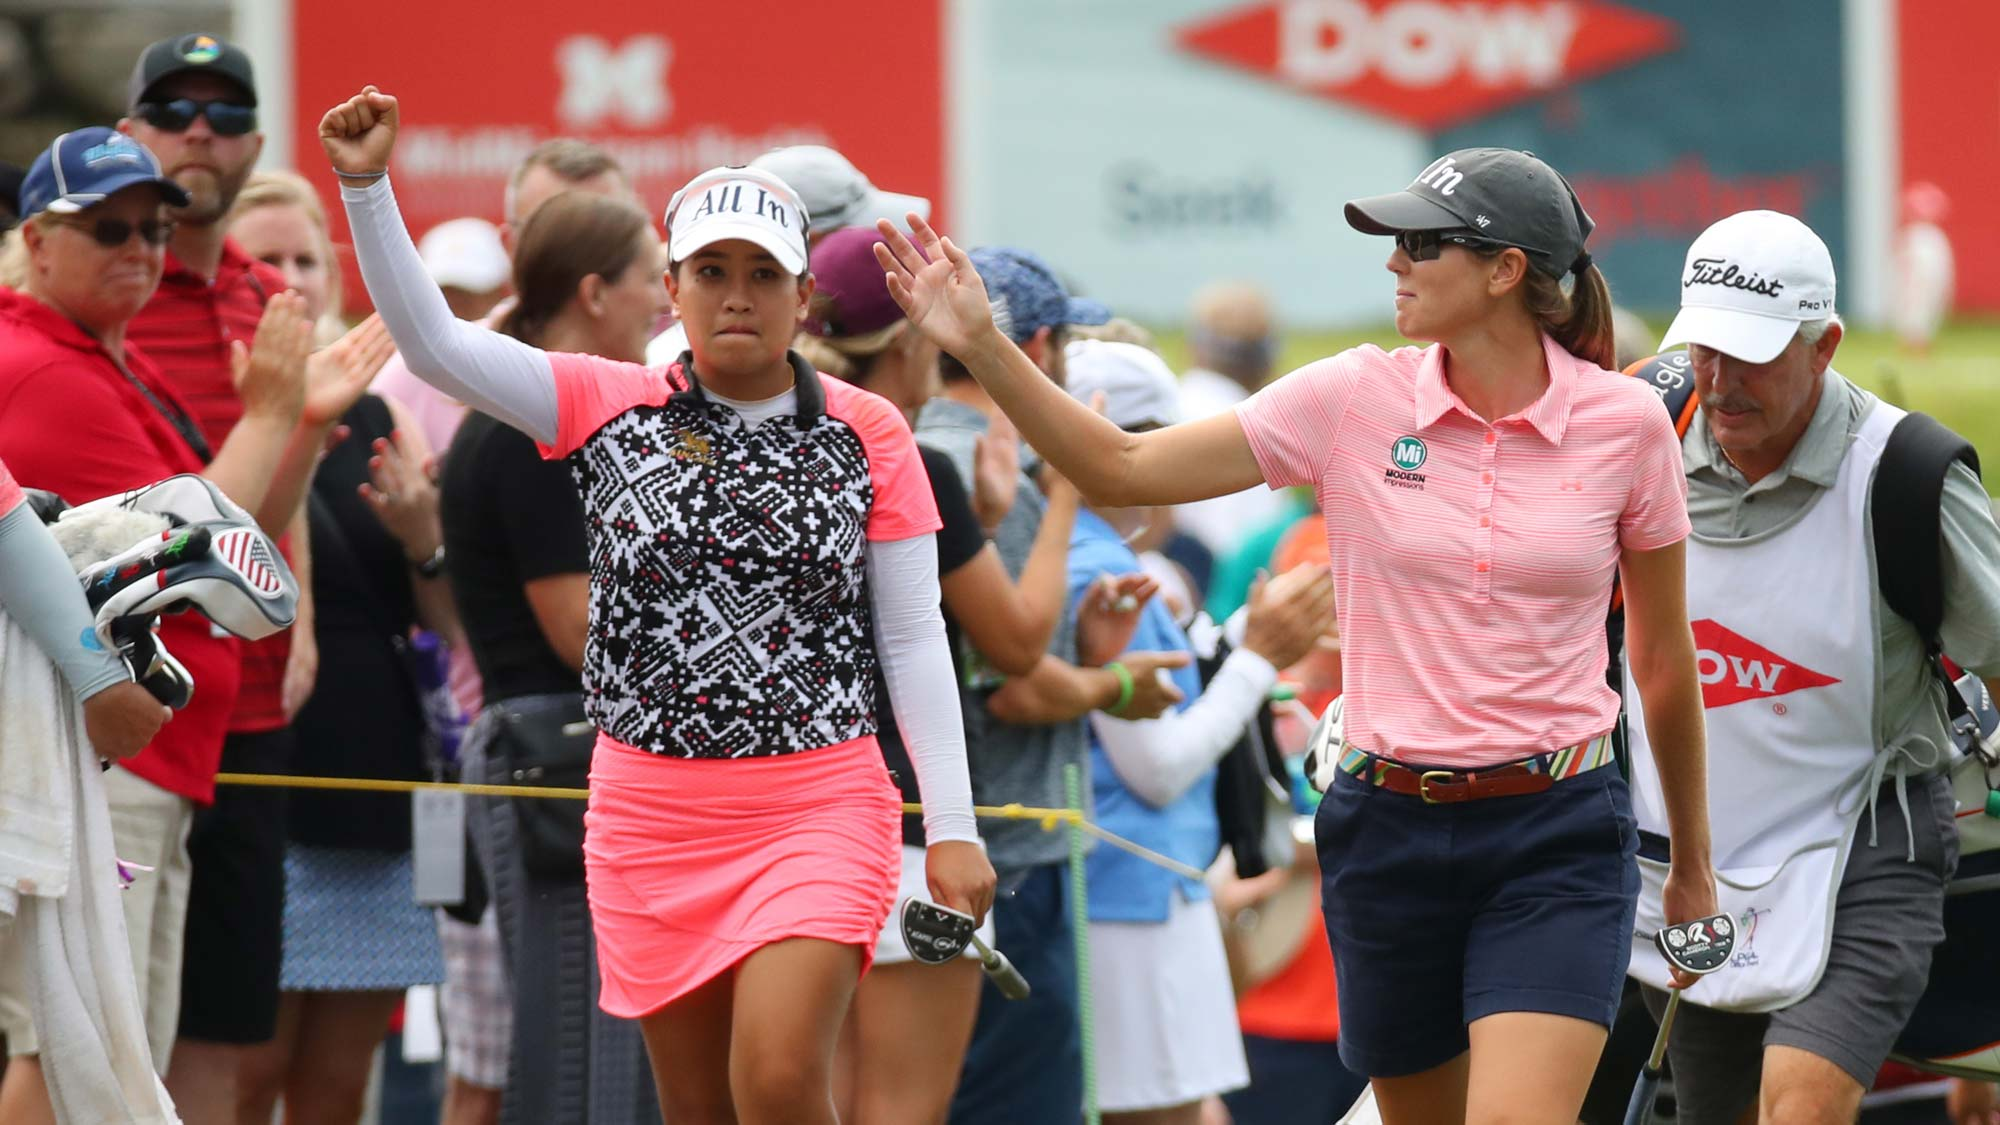 Teammates Cydney Clanton of the United States (R) and Jasmine Suwannapura of Thailand walk to the 18th green during the final round of the Dow Great Lakes Bay Invitational